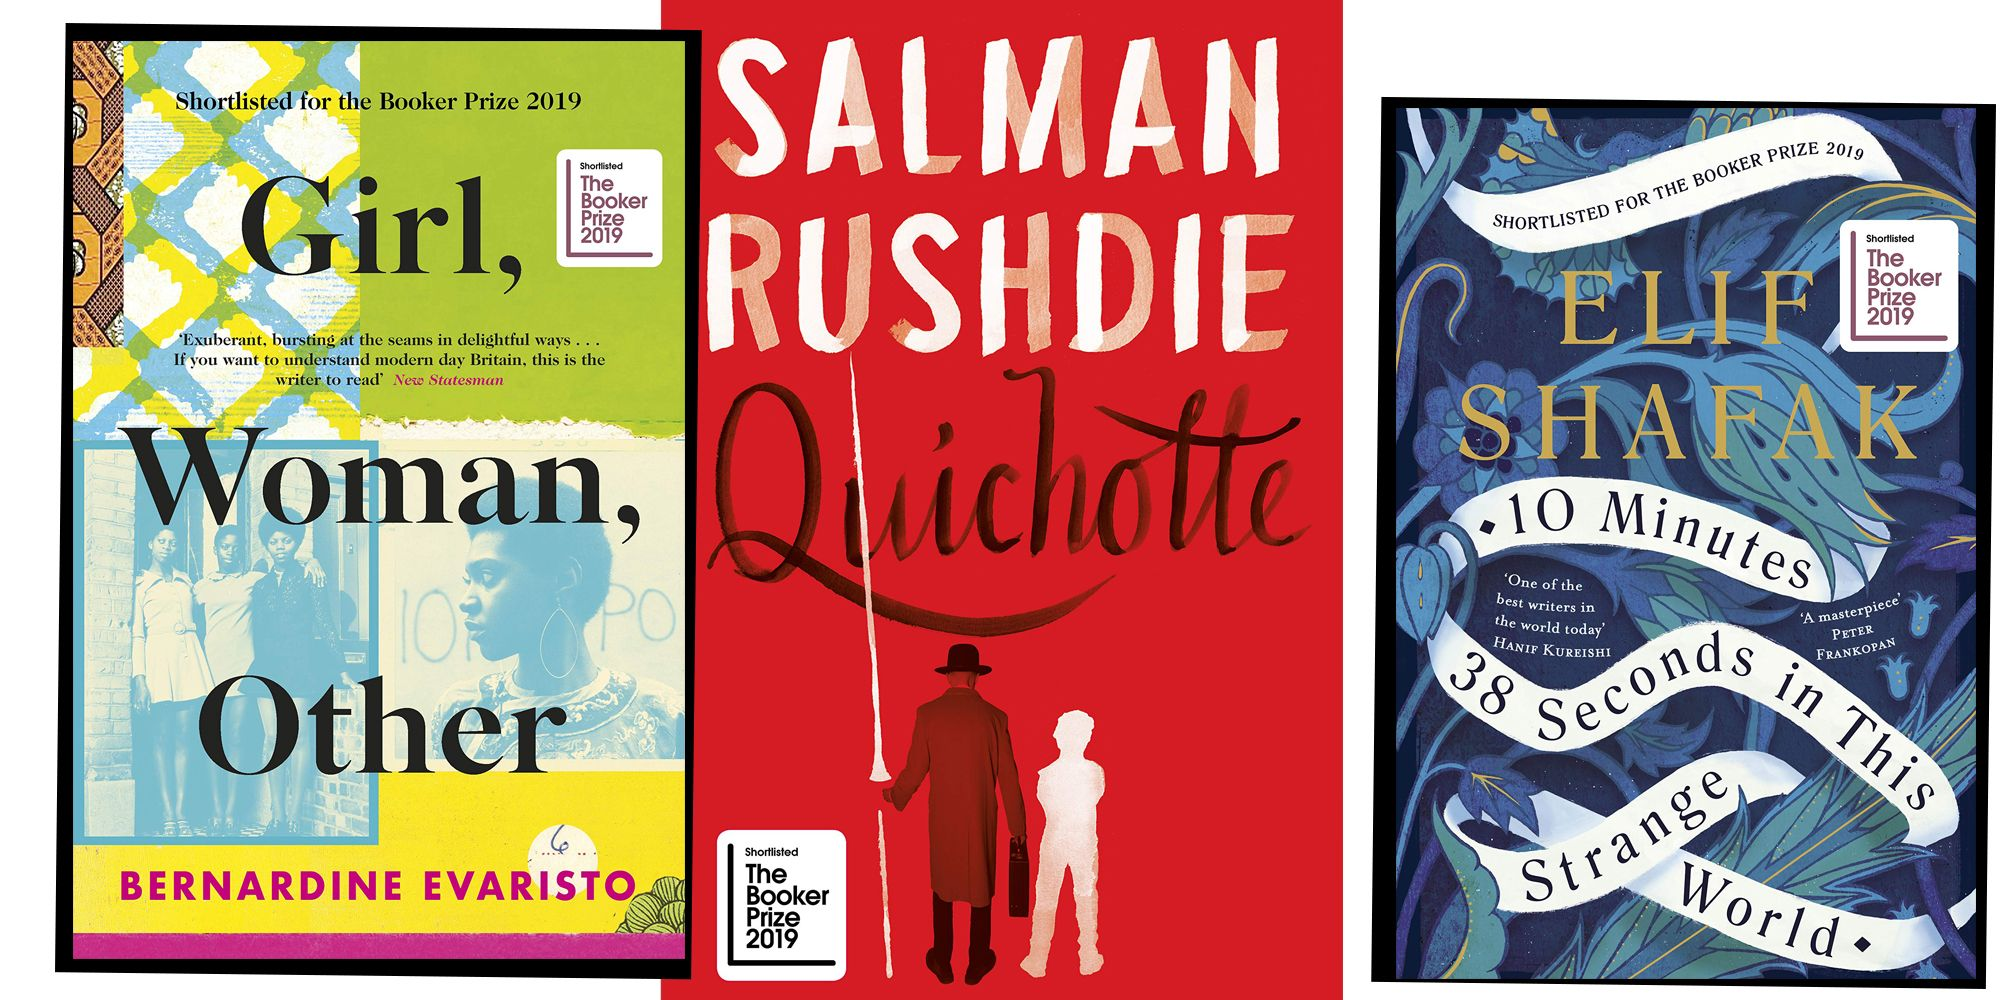 Booker Prize 2019: The Shortlisted Books You Need To Add To Your Shopping Basket